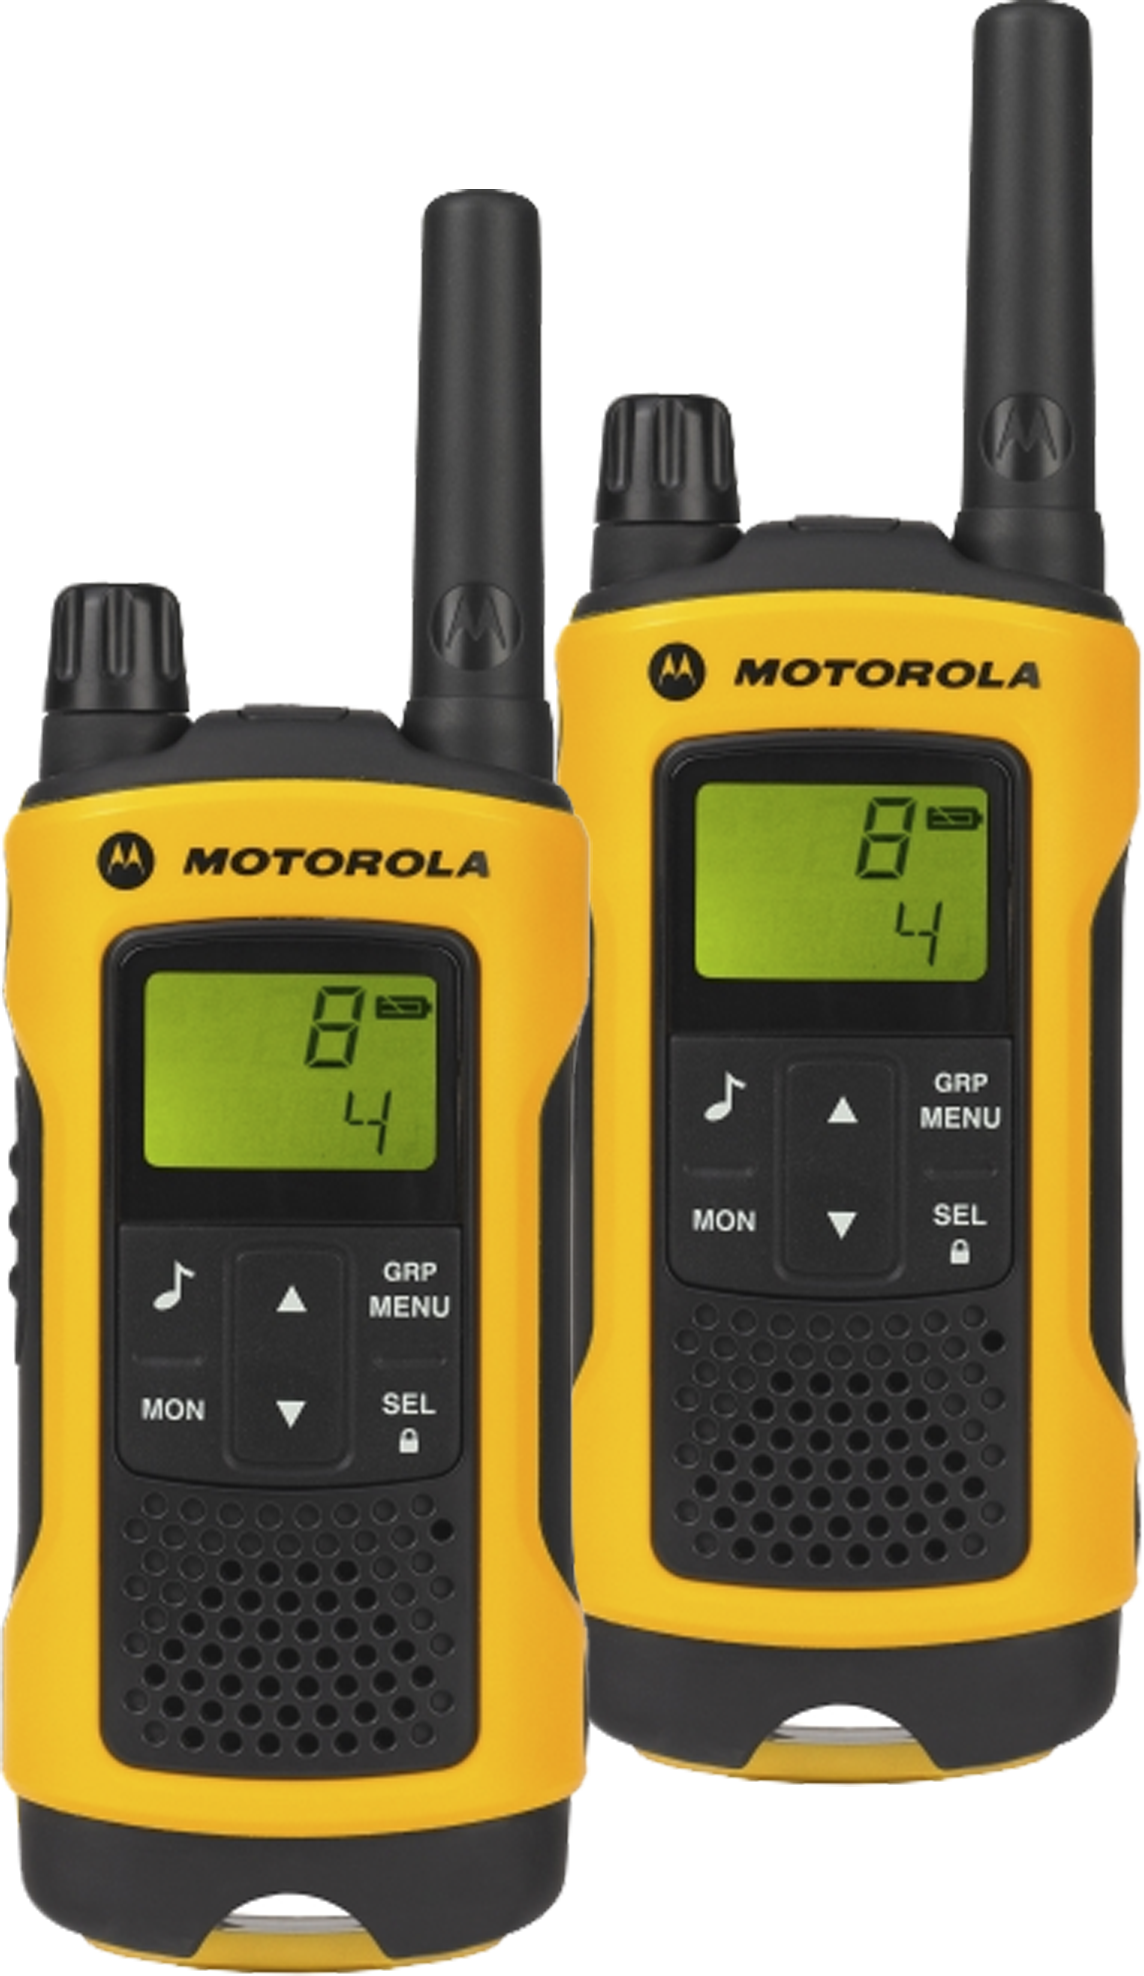 Motorola TLKR T80 Extreme – Twin featured image